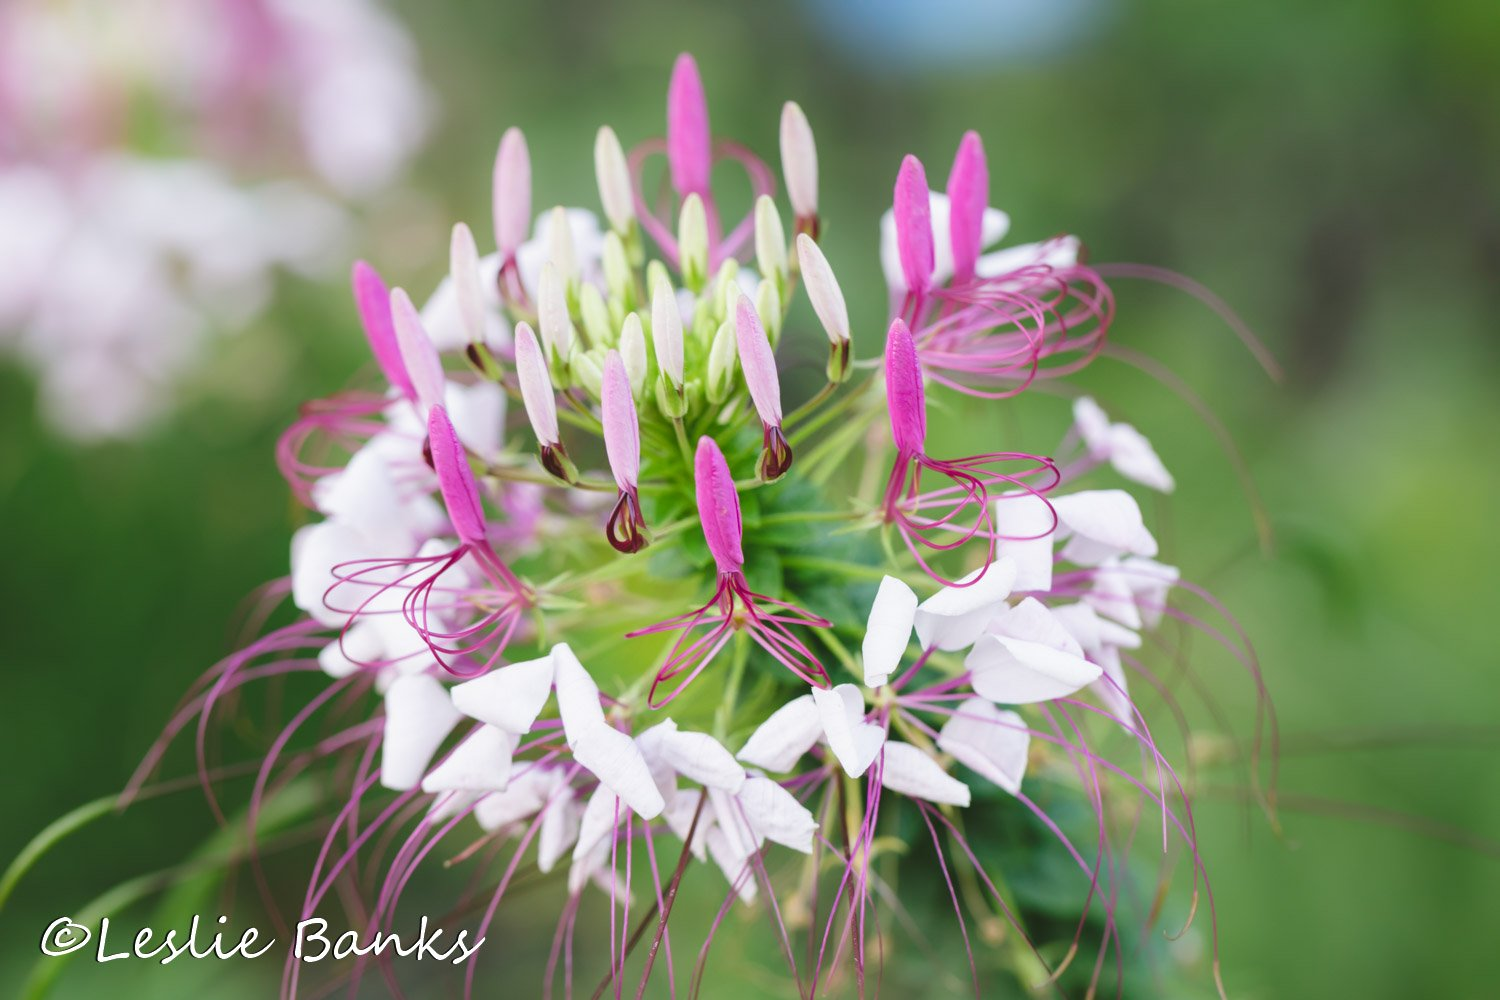 Cleome, also known as spider flower